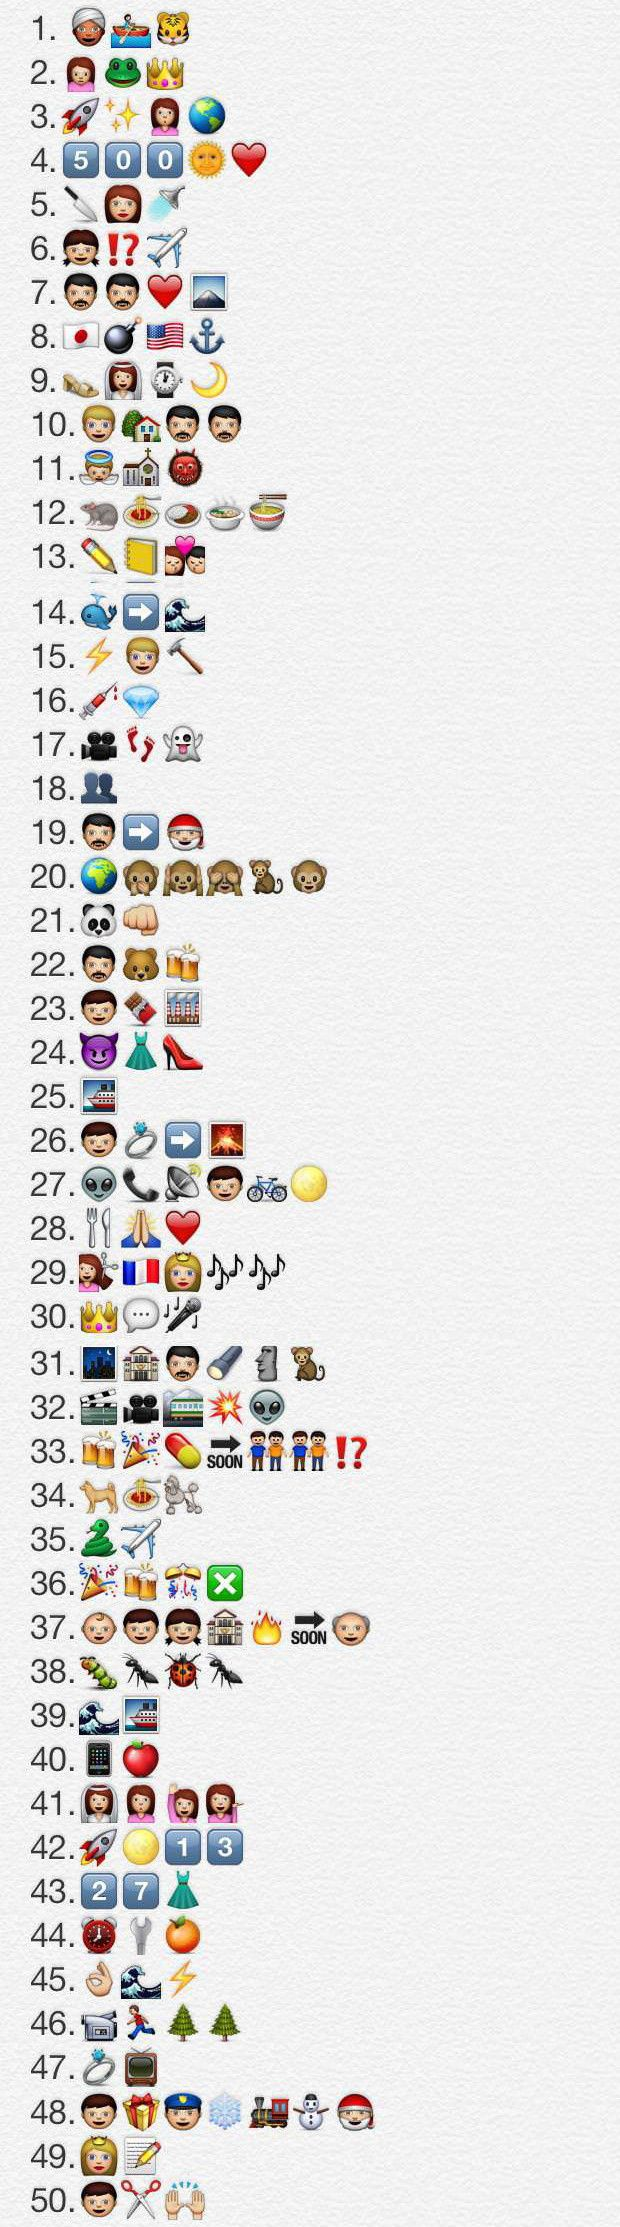 Guess The Emoji Level 34 : guess, emoji, level, Guess, Emoji, Level